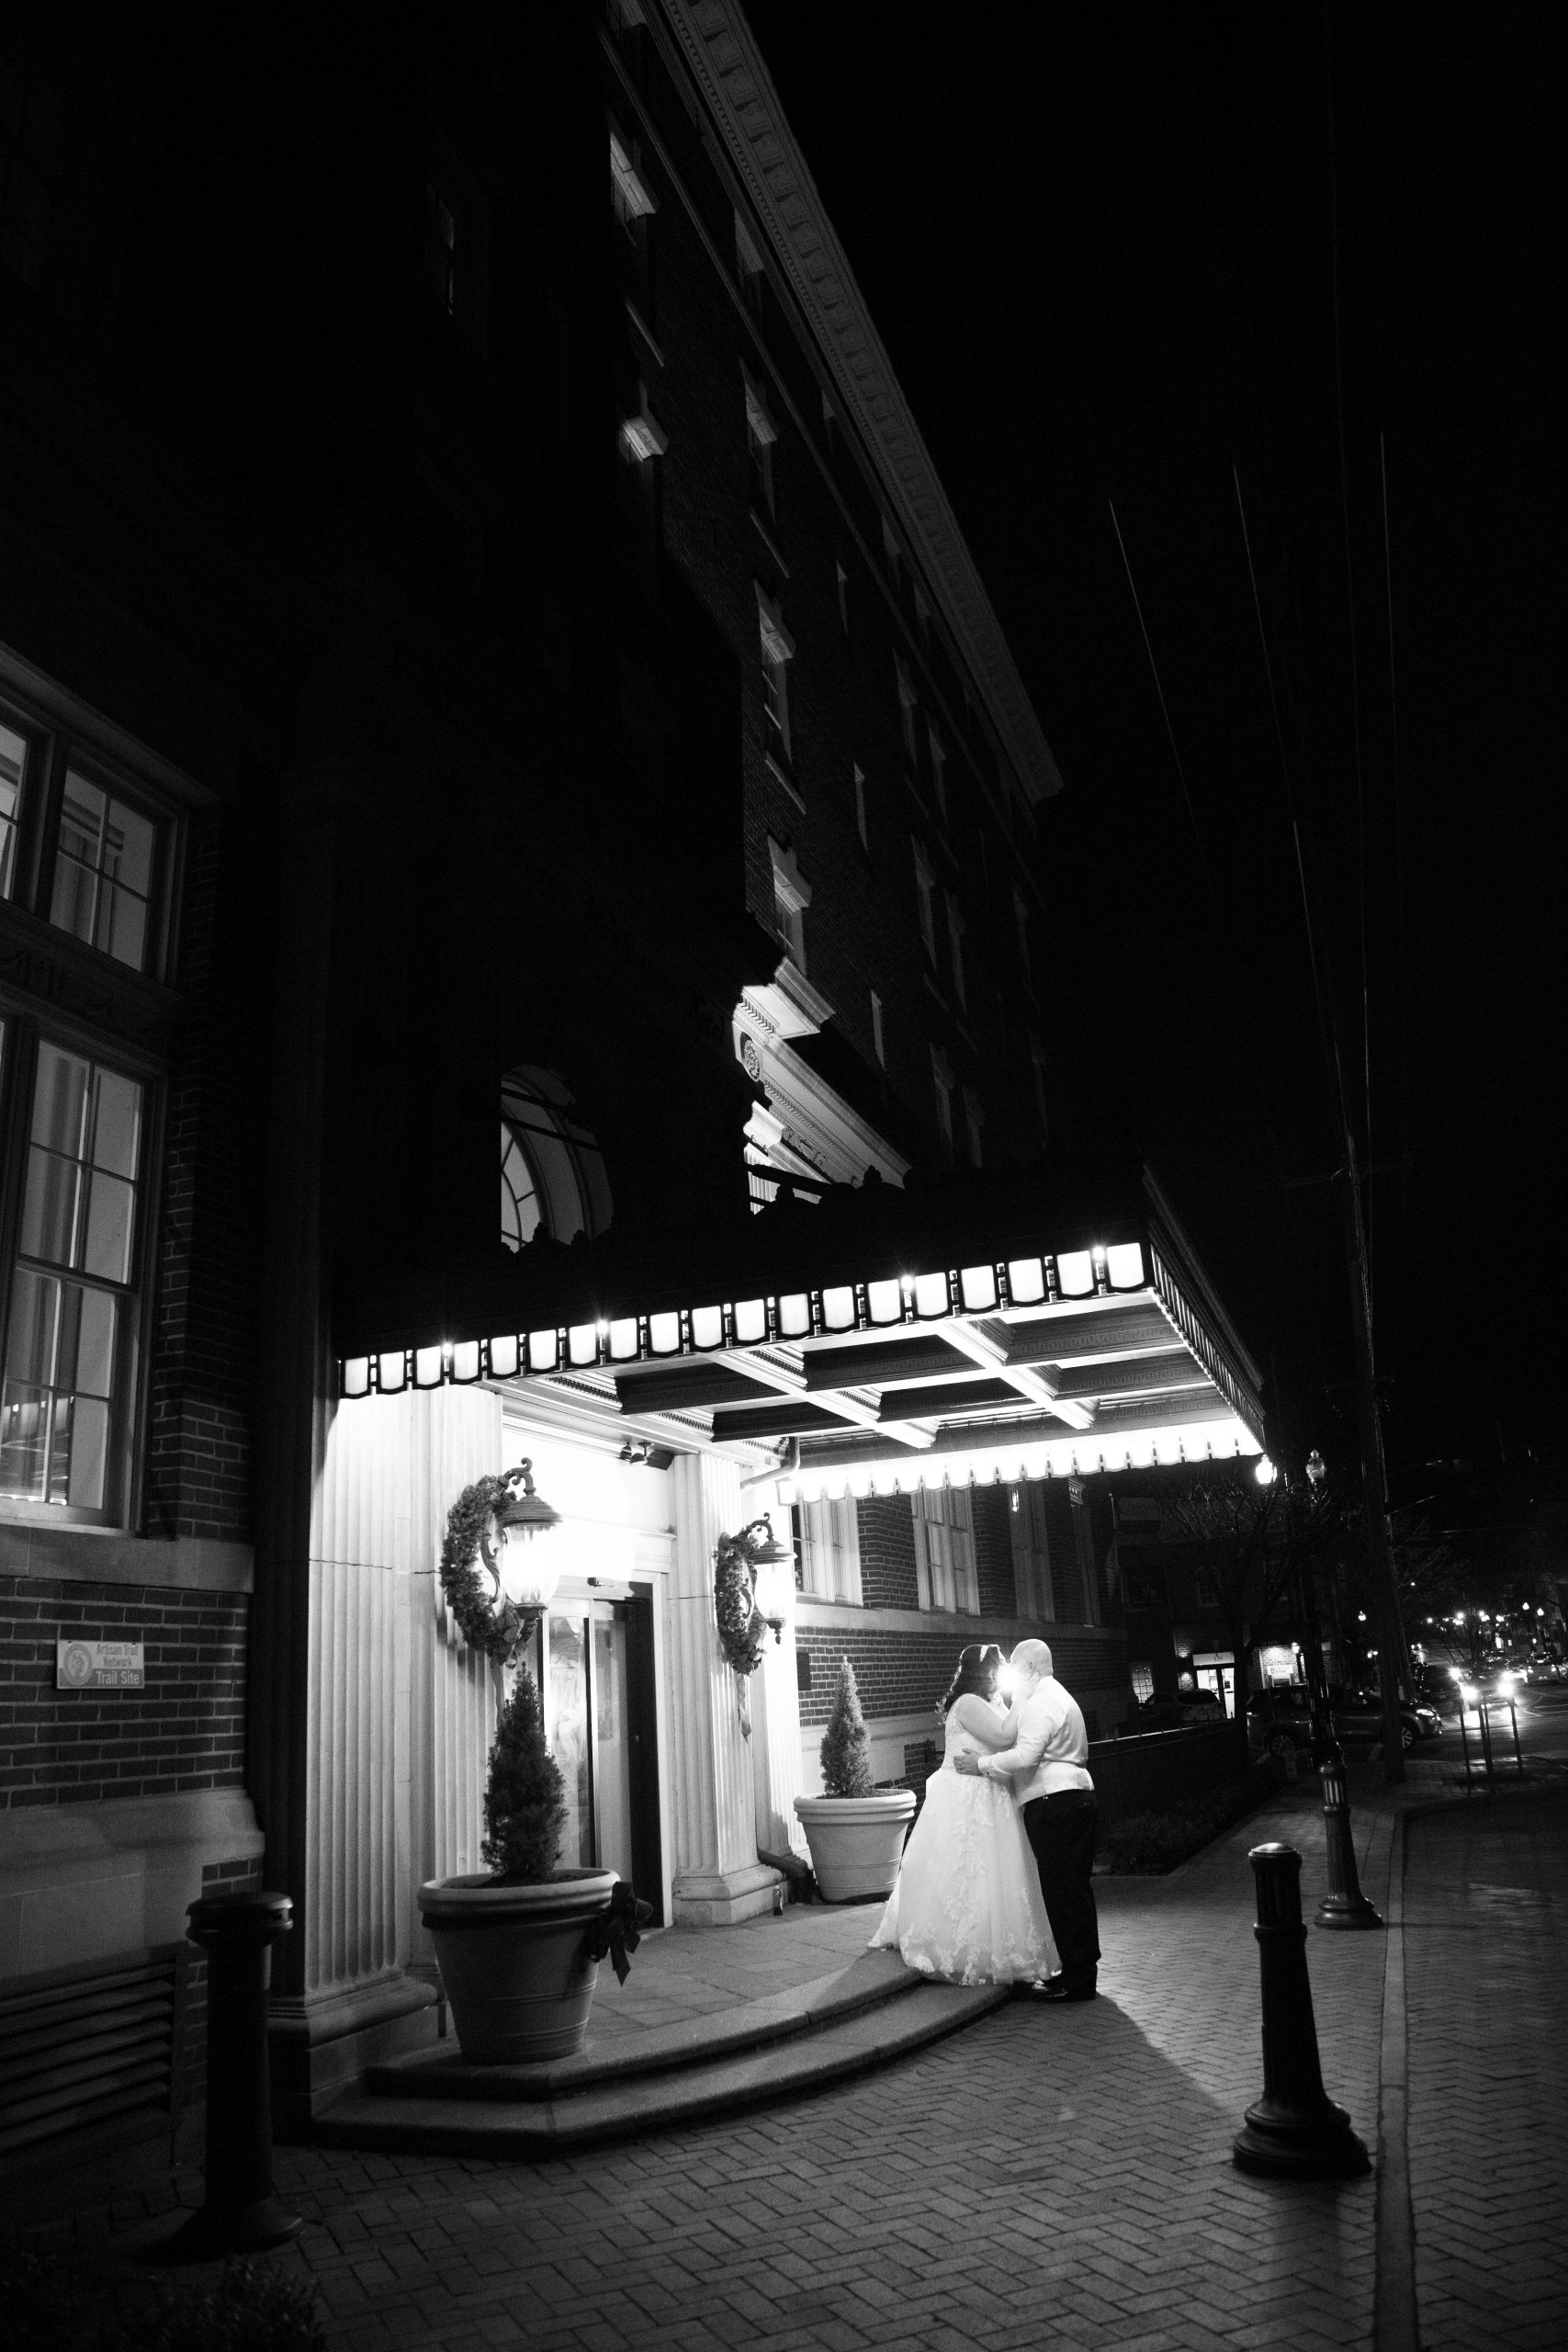 Last kiss of the night. Bride and groom posing in old town winchester. George Washington hotel Christmas wedding